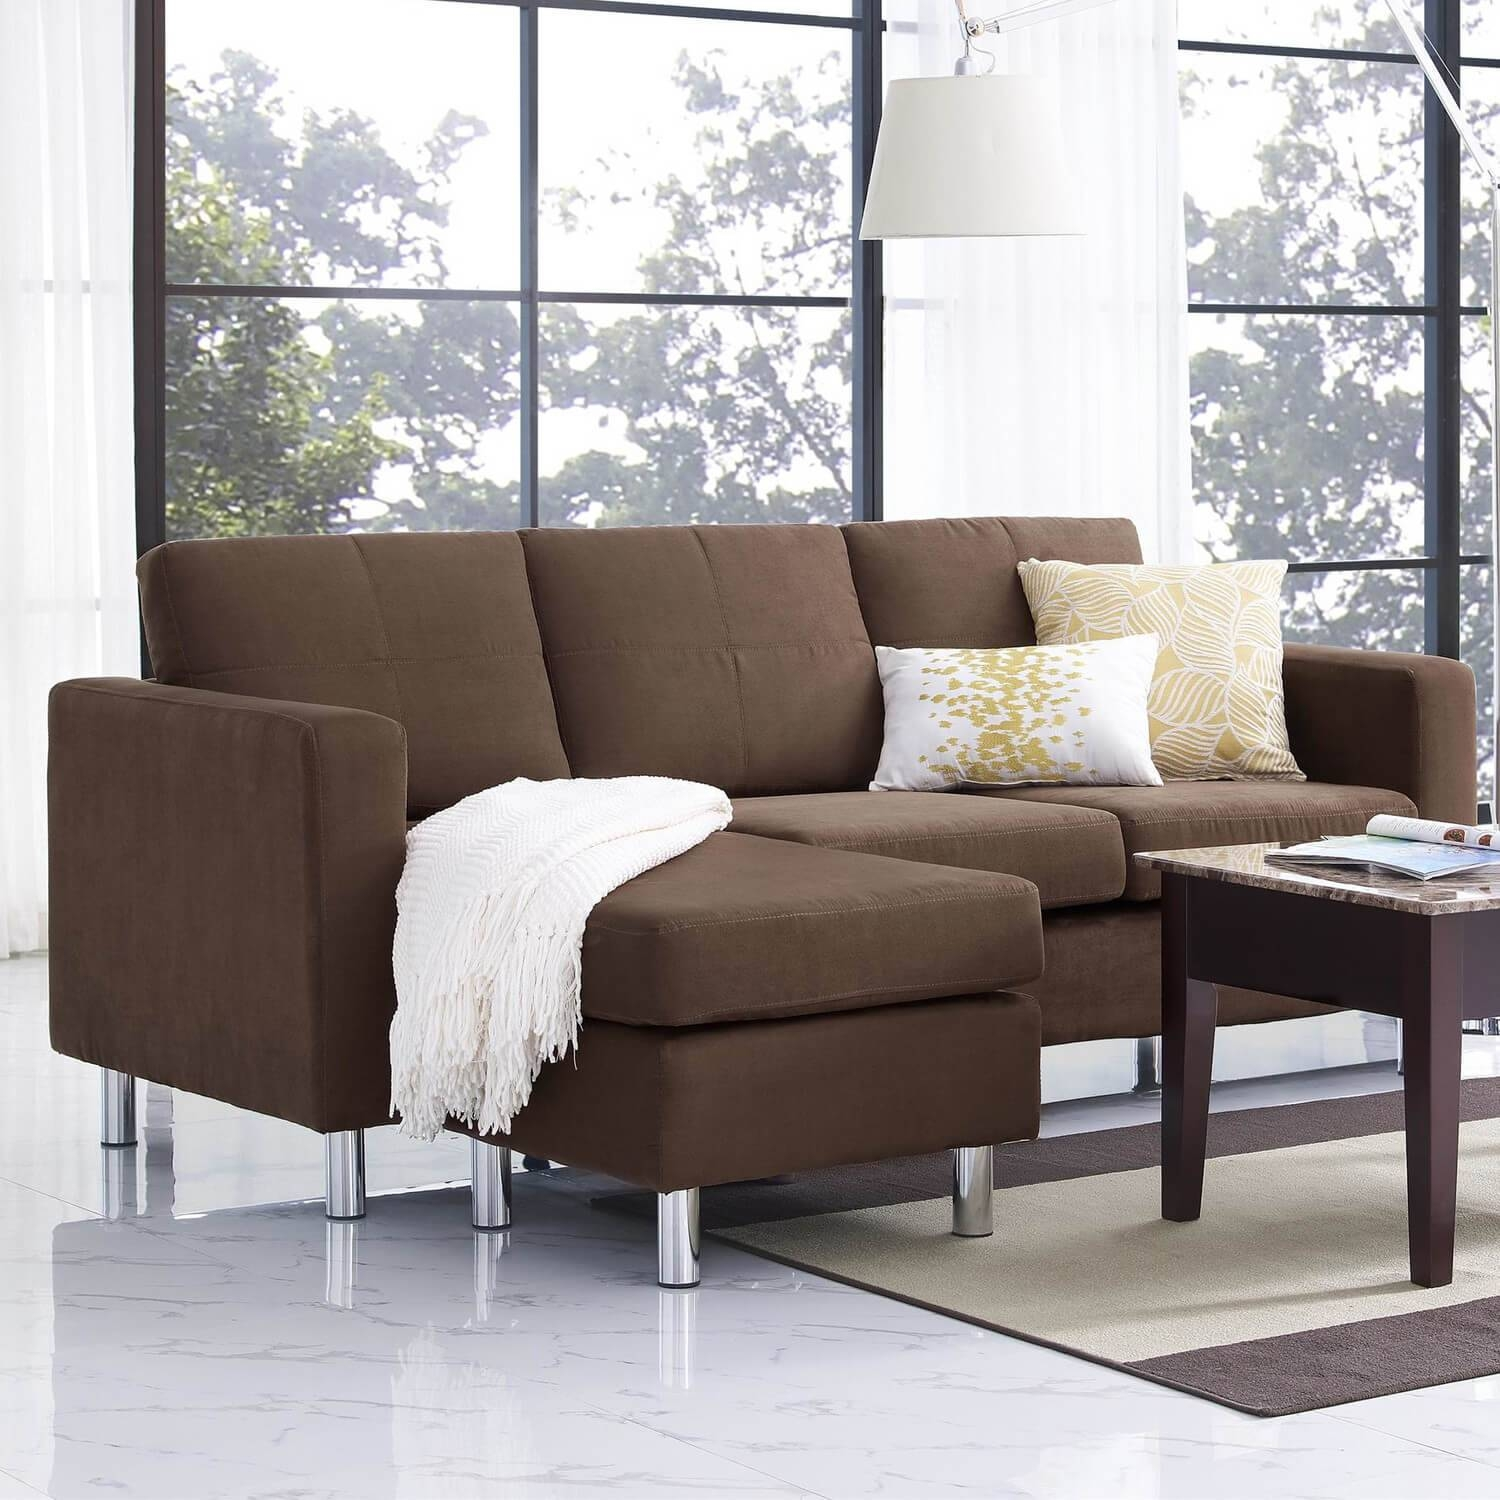 30 Best Ideas of Sectional Sofas for Small Spaces With